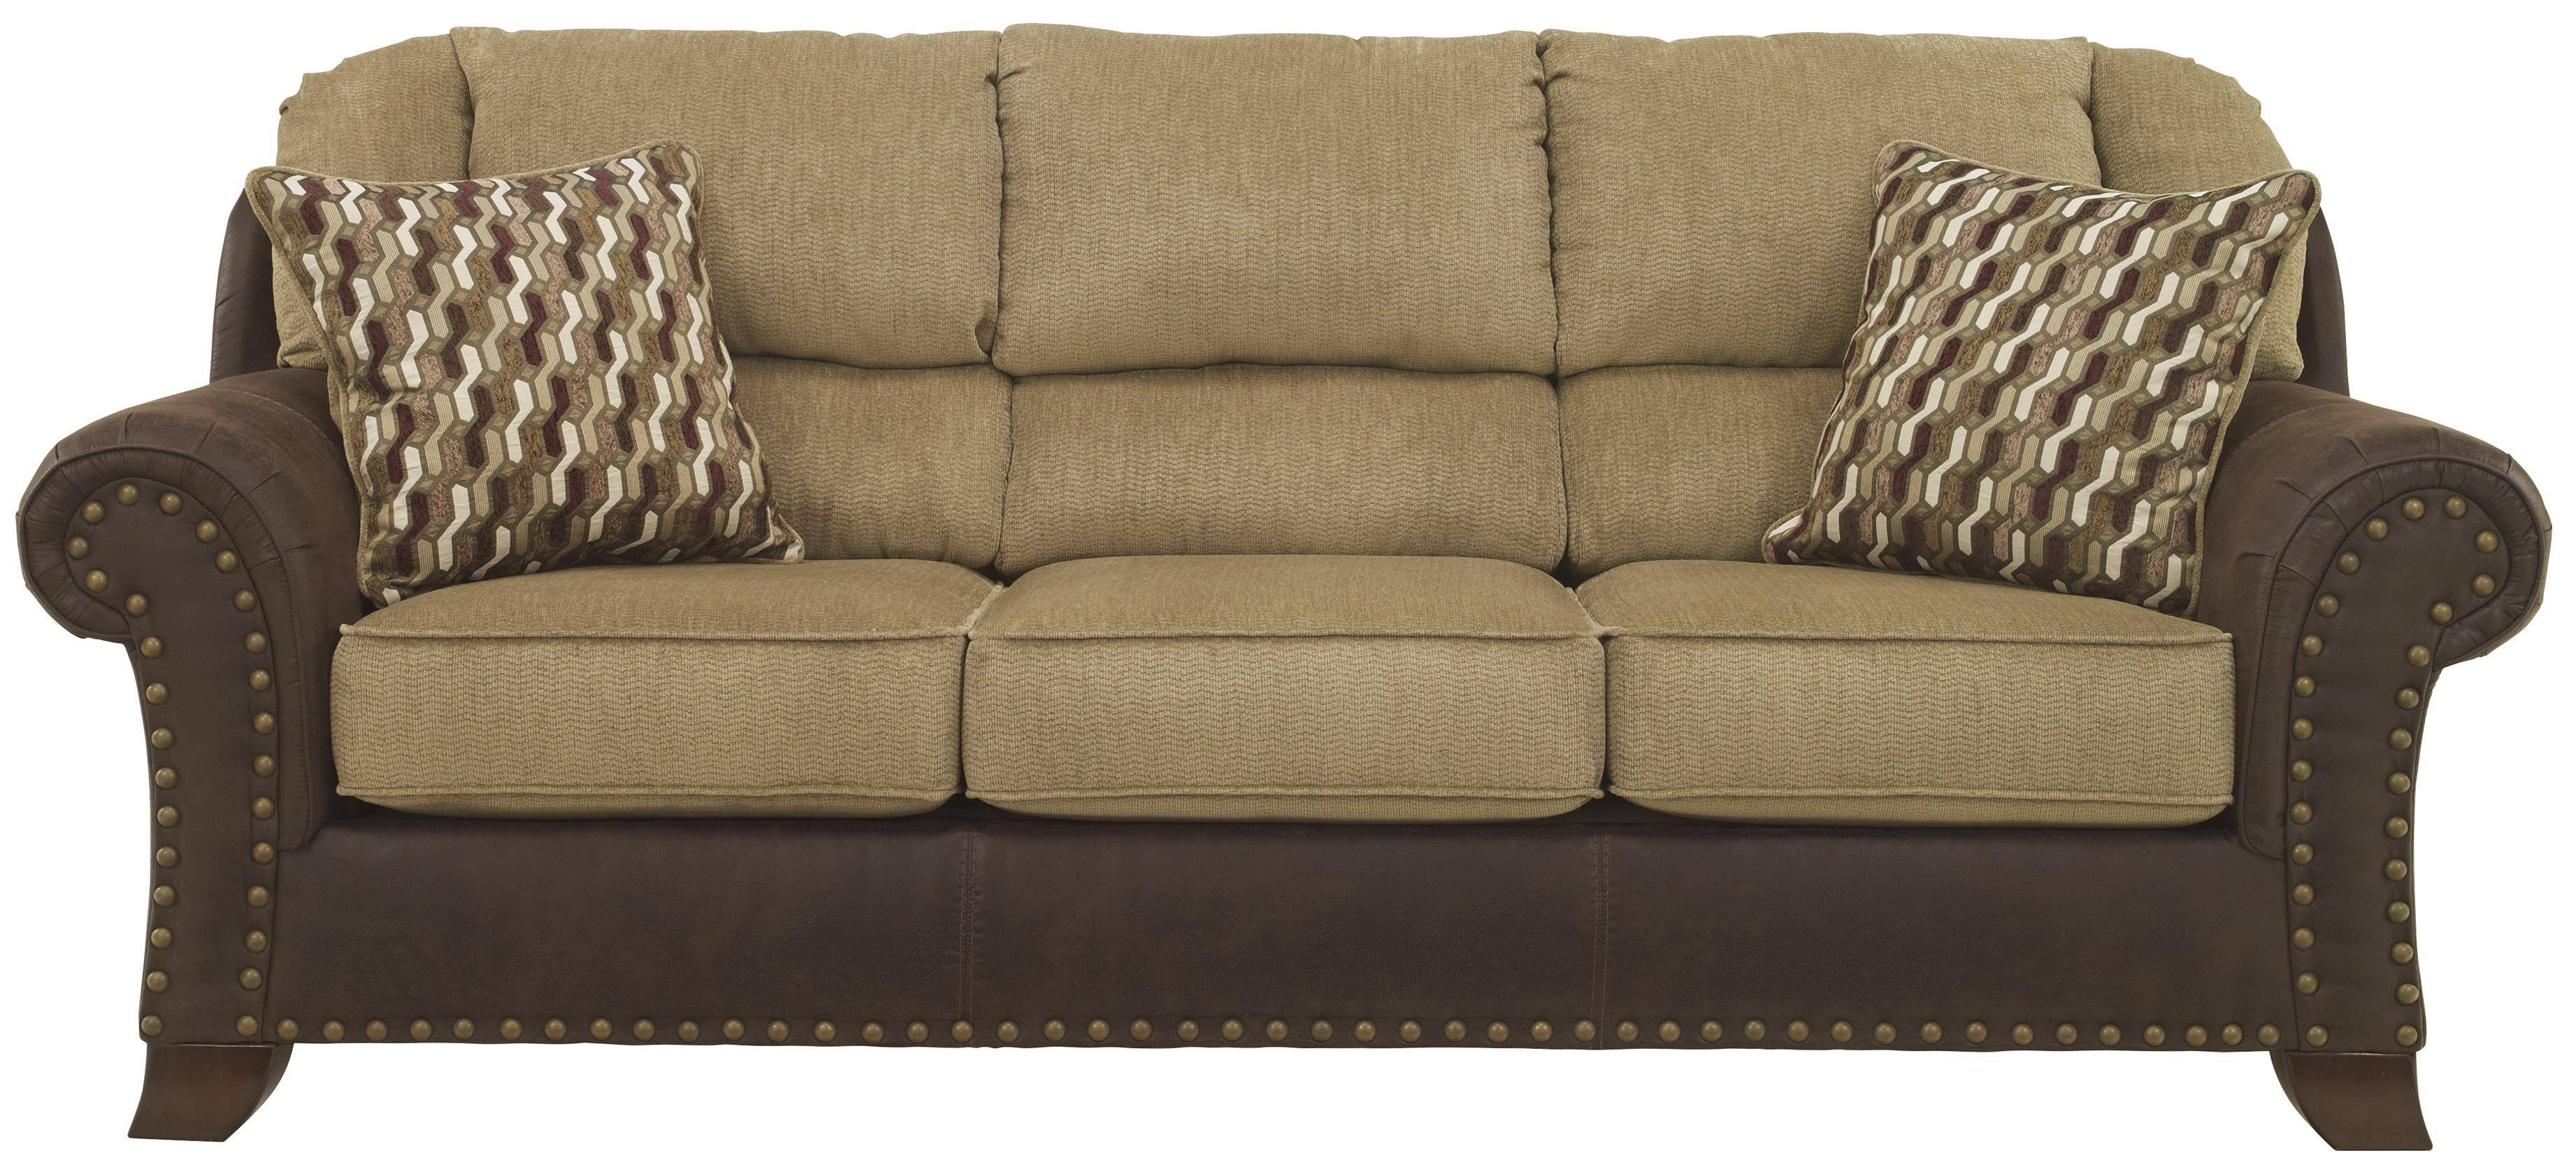 Two-Tone Sofa With Chenille Fabric/faux Leather Upholstery pertaining to Benchcraft Leather Sofas (Image 15 of 15)